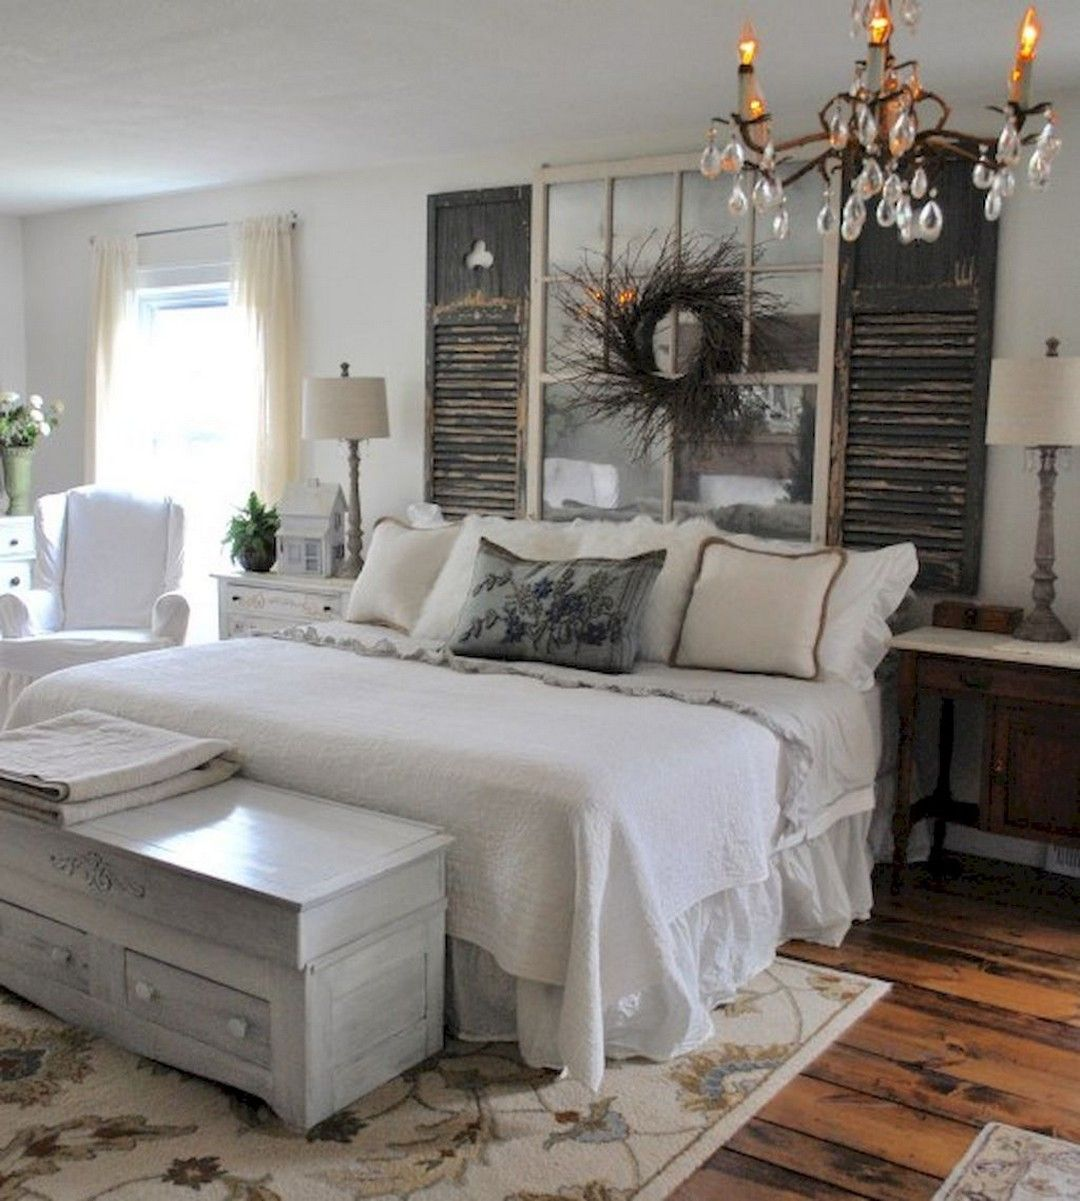 Bedroom Ideas 52 Modern Design Ideas For Your Bedroom: 52 Rustic Farmhouse Bedroom Decorating Ideas To Transform